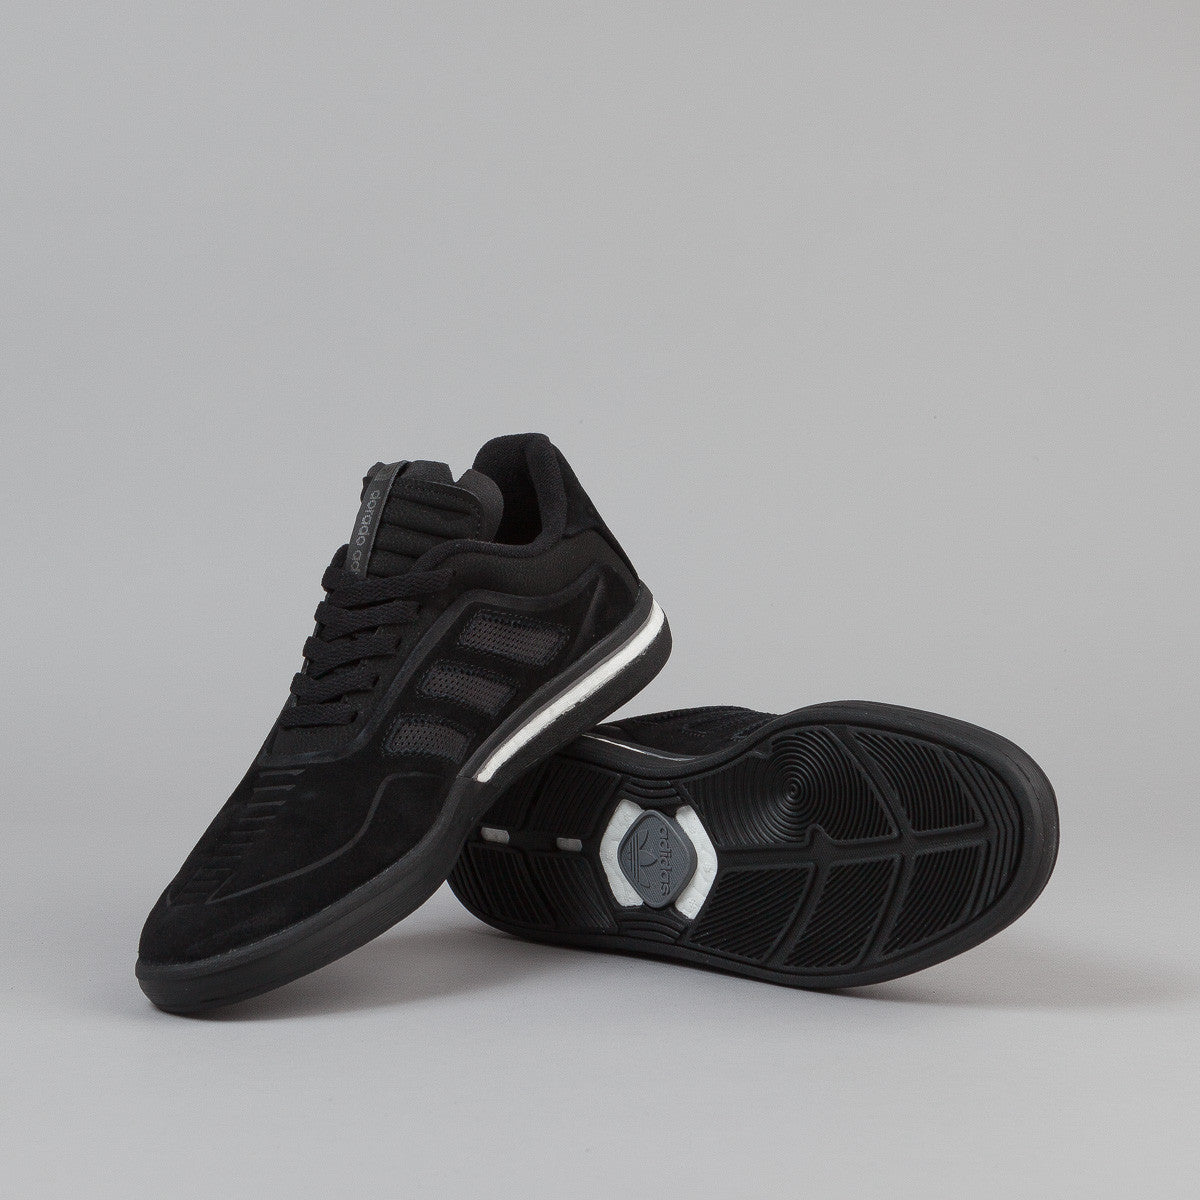 Adidas Dorado ADV Shoes - Core Black / Core Black / FTW White